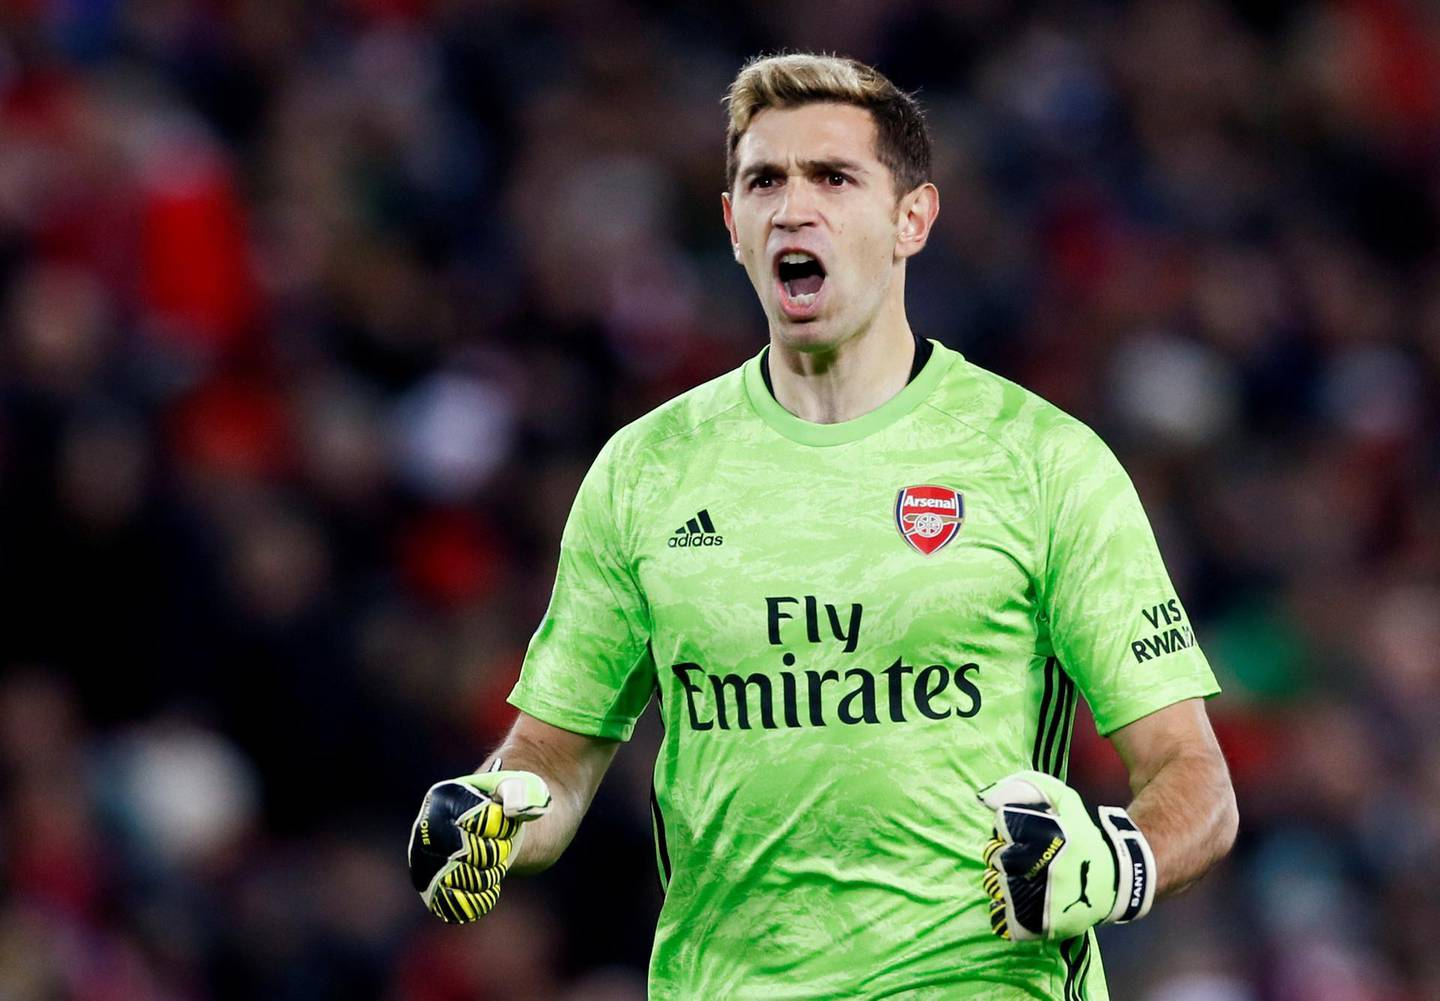 """Soccer Football - Carabao Cup - Fourth Round - Liverpool v Arsenal - Anfield, Liverpool, Britain - October 30, 2019  Arsenal's Emiliano Martinez celebrates their third goal   Action Images via Reuters/Jason Cairnduff  EDITORIAL USE ONLY. No use with unauthorized audio, video, data, fixture lists, club/league logos or """"live"""" services. Online in-match use limited to 75 images, no video emulation. No use in betting, games or single club/league/player publications.  Please contact your account representative for further details."""